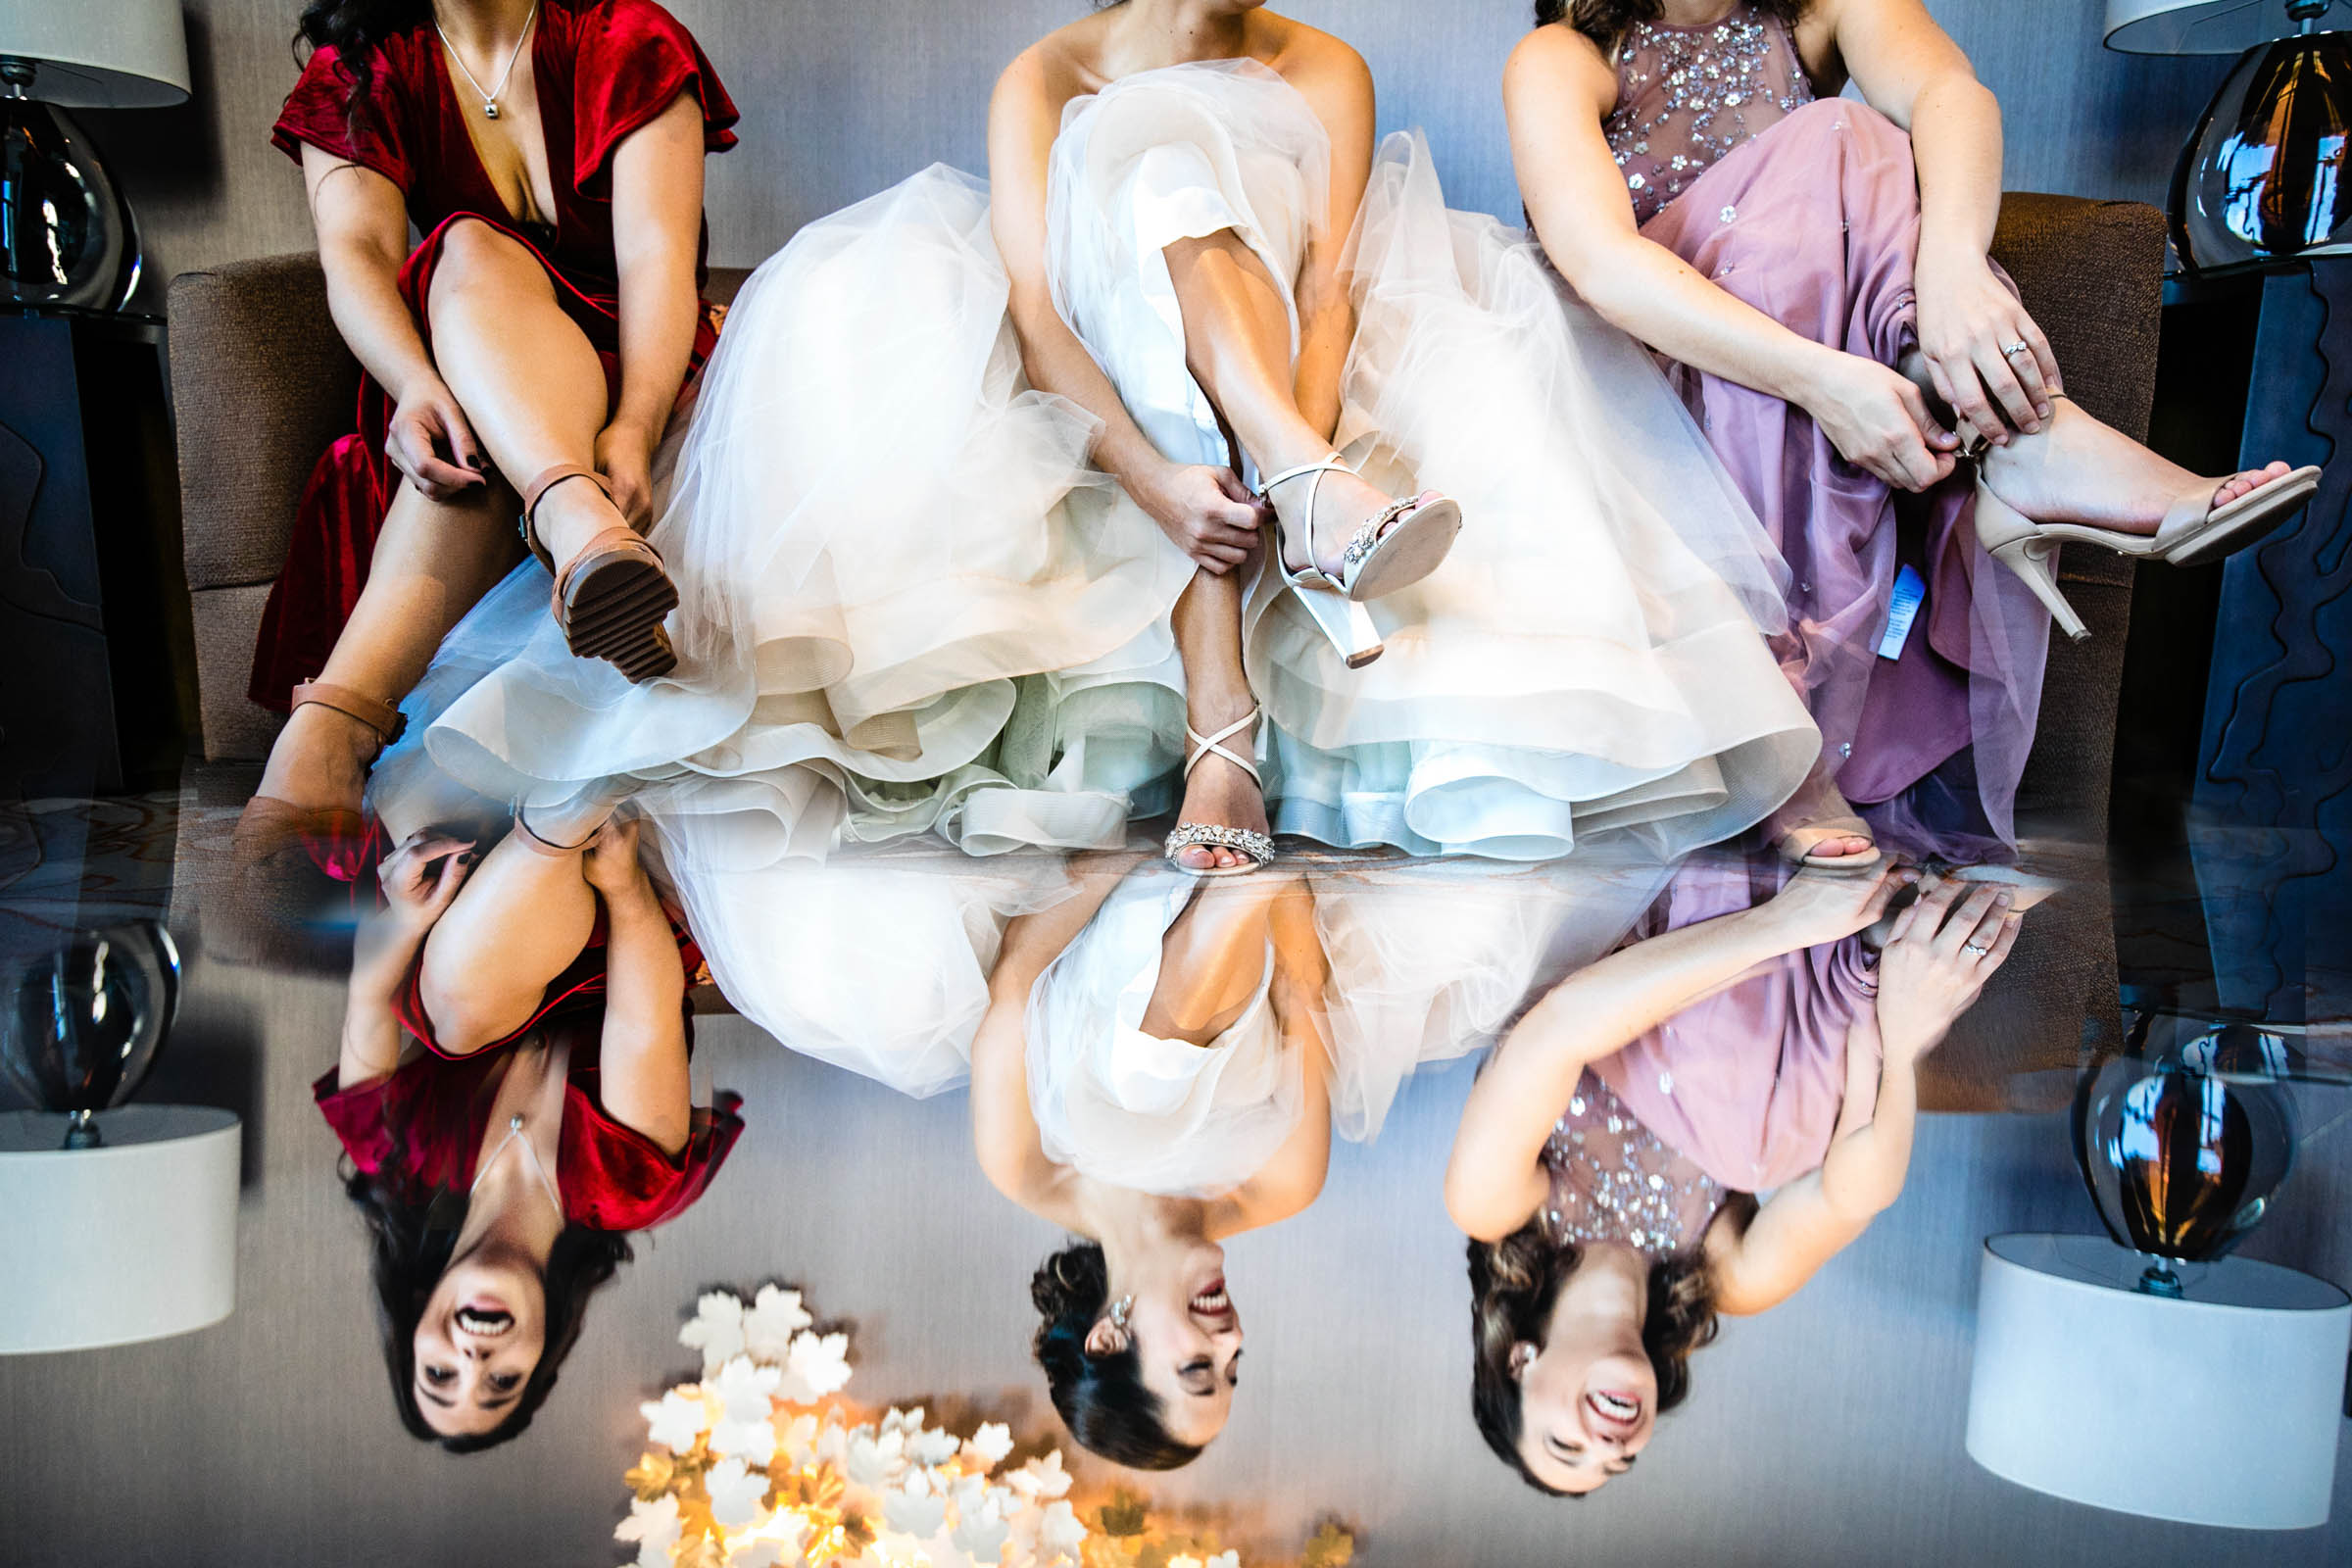 Reflection of bride and bridesmaids getting ready by Marissa Joy from Los Angeles